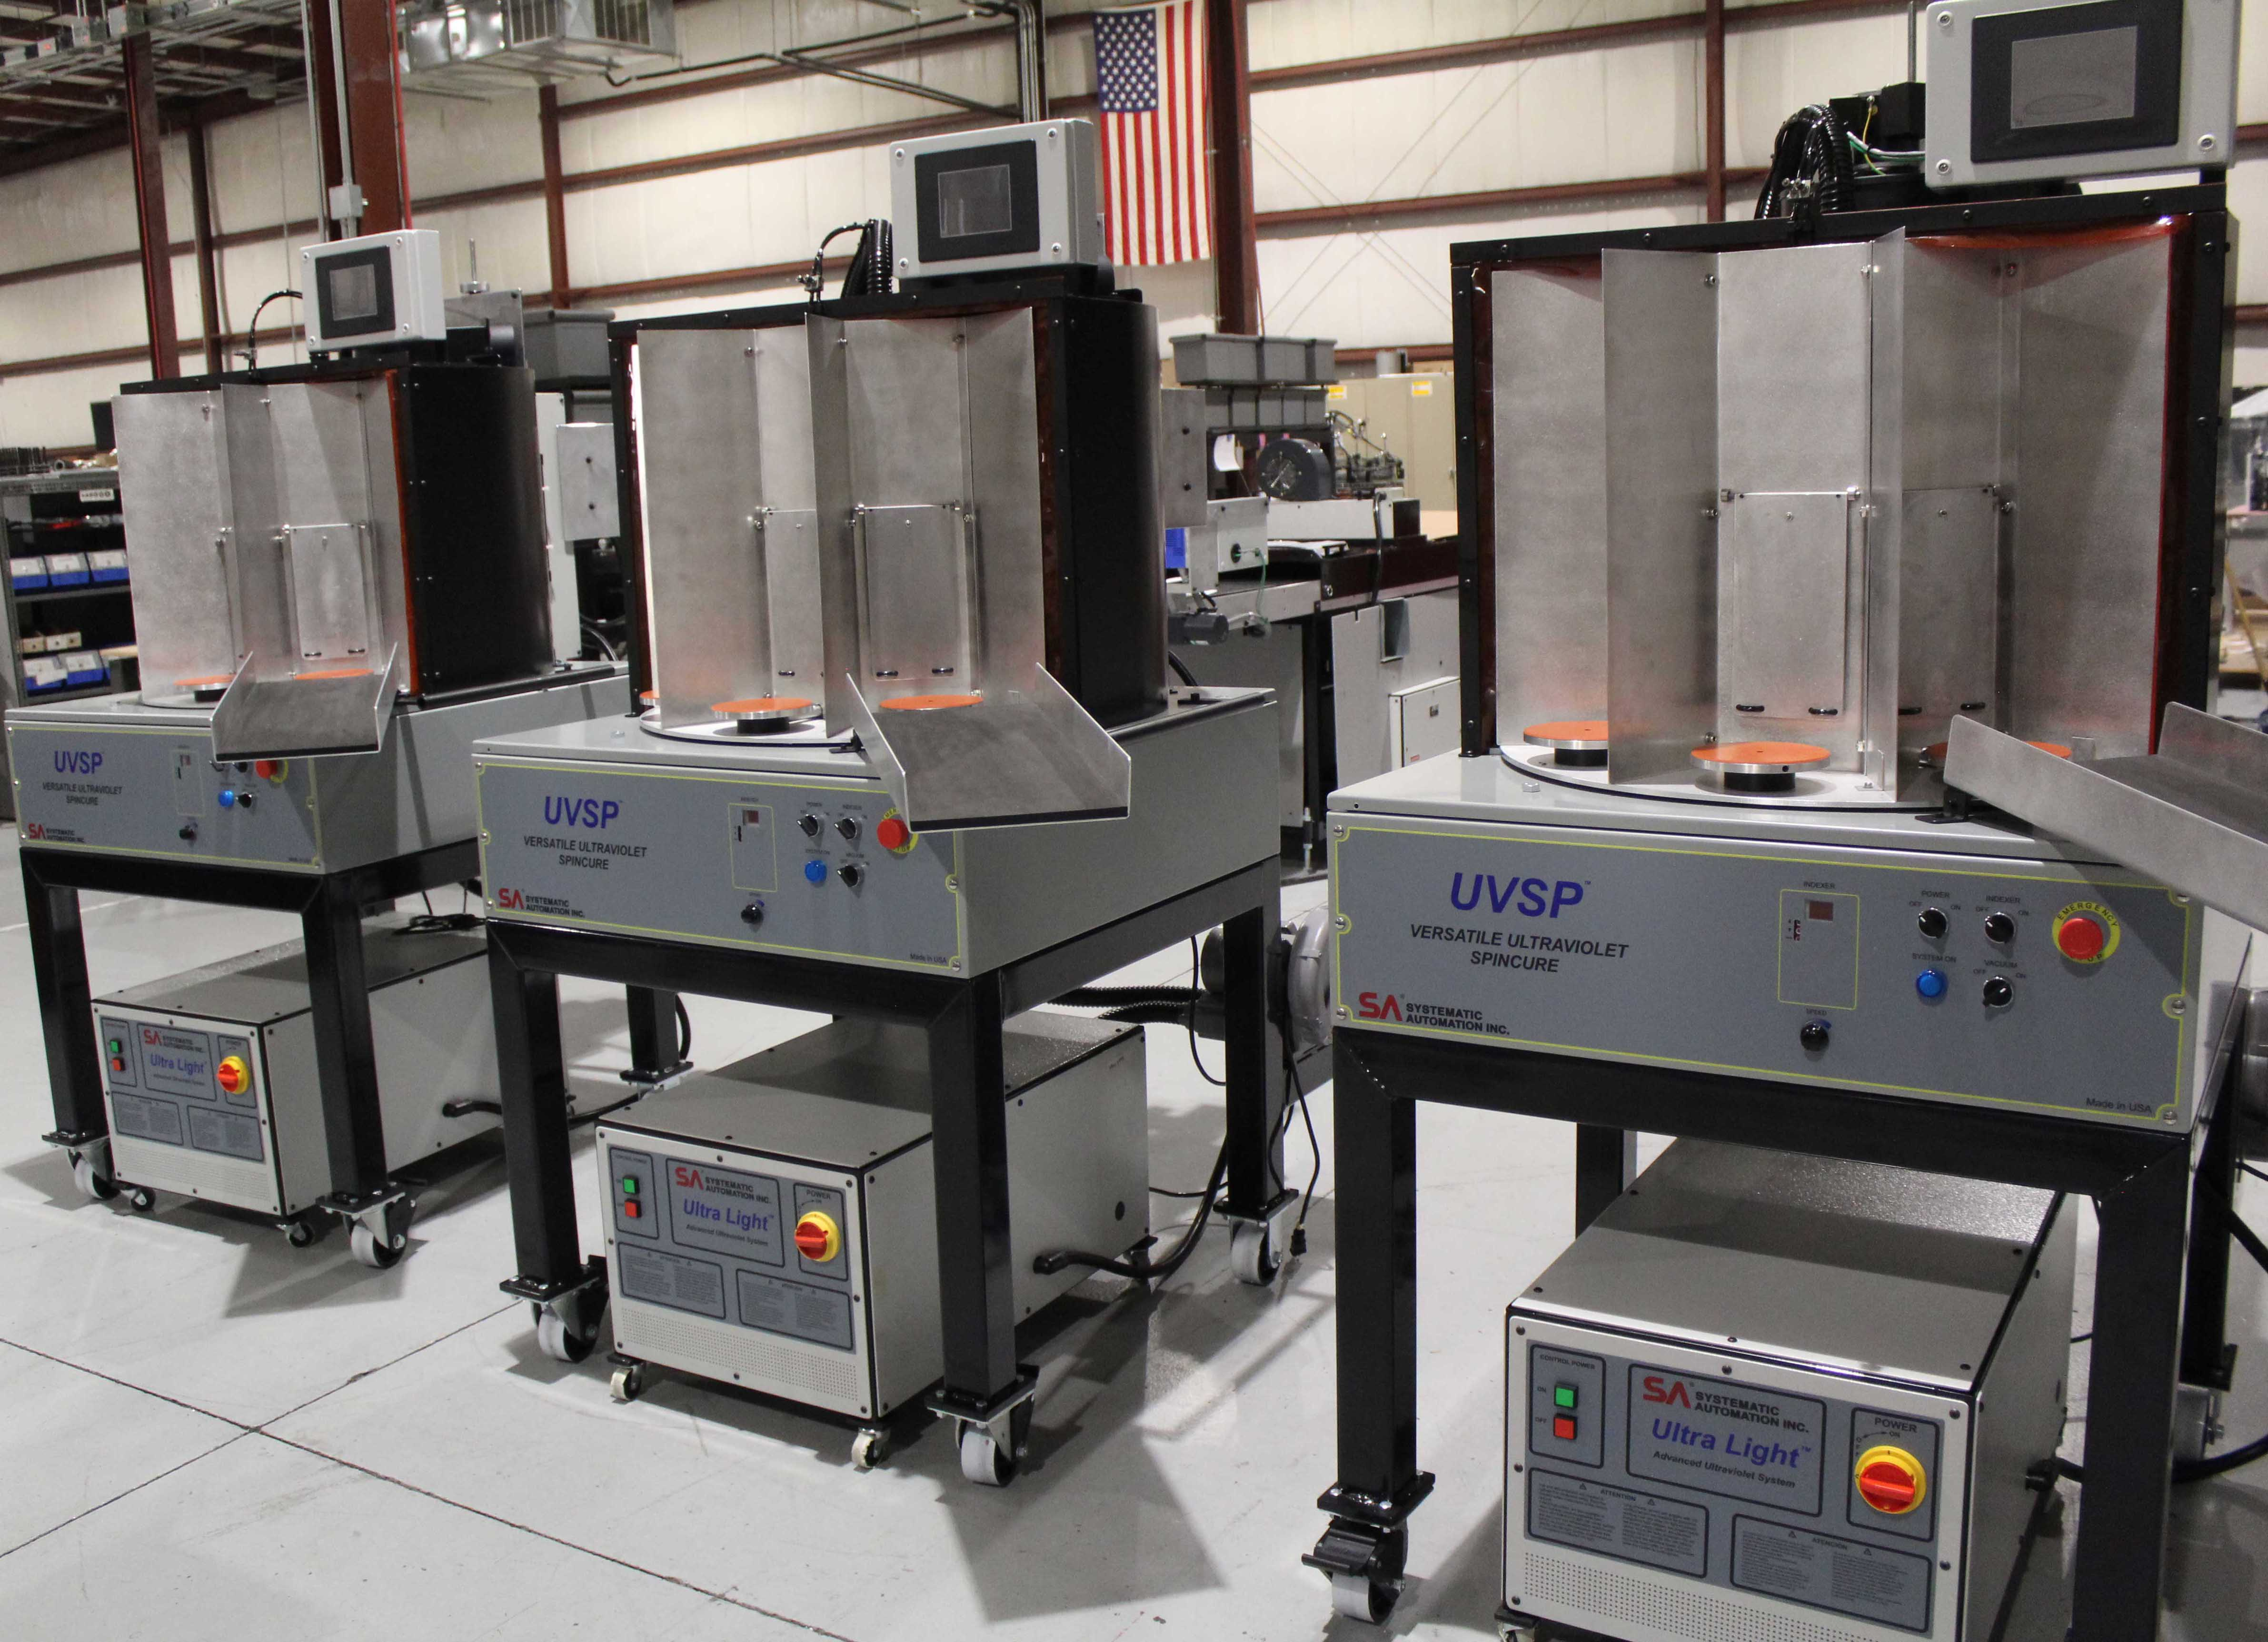 UVSP, uv curing, cylindrical products